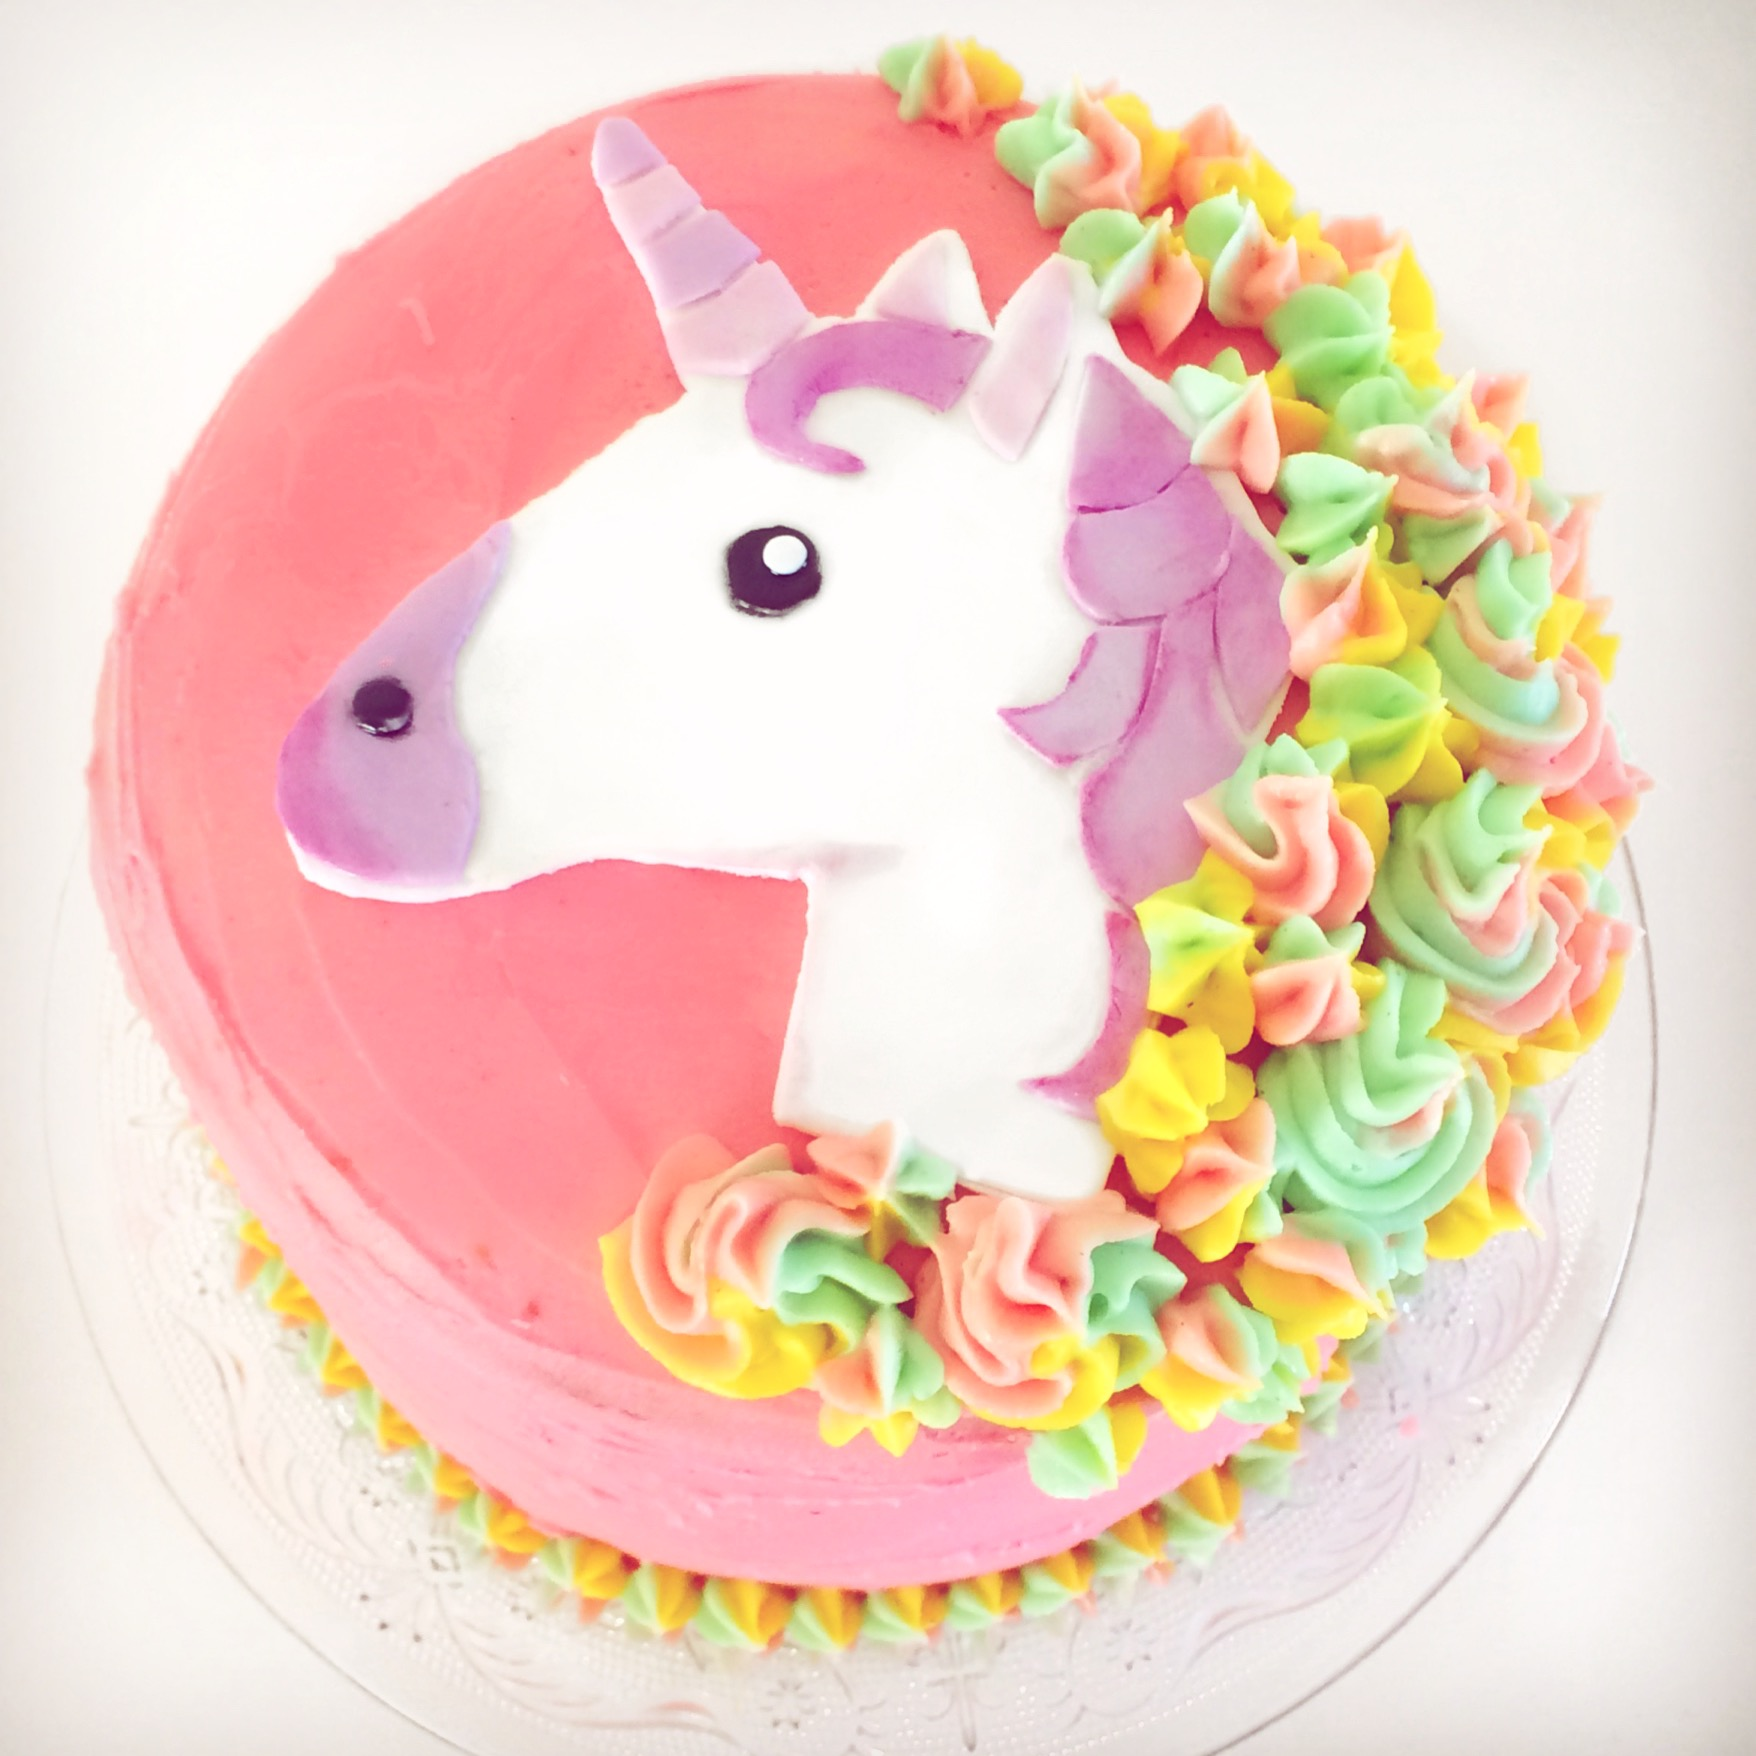 DIY Unicorn Rainbow Cake